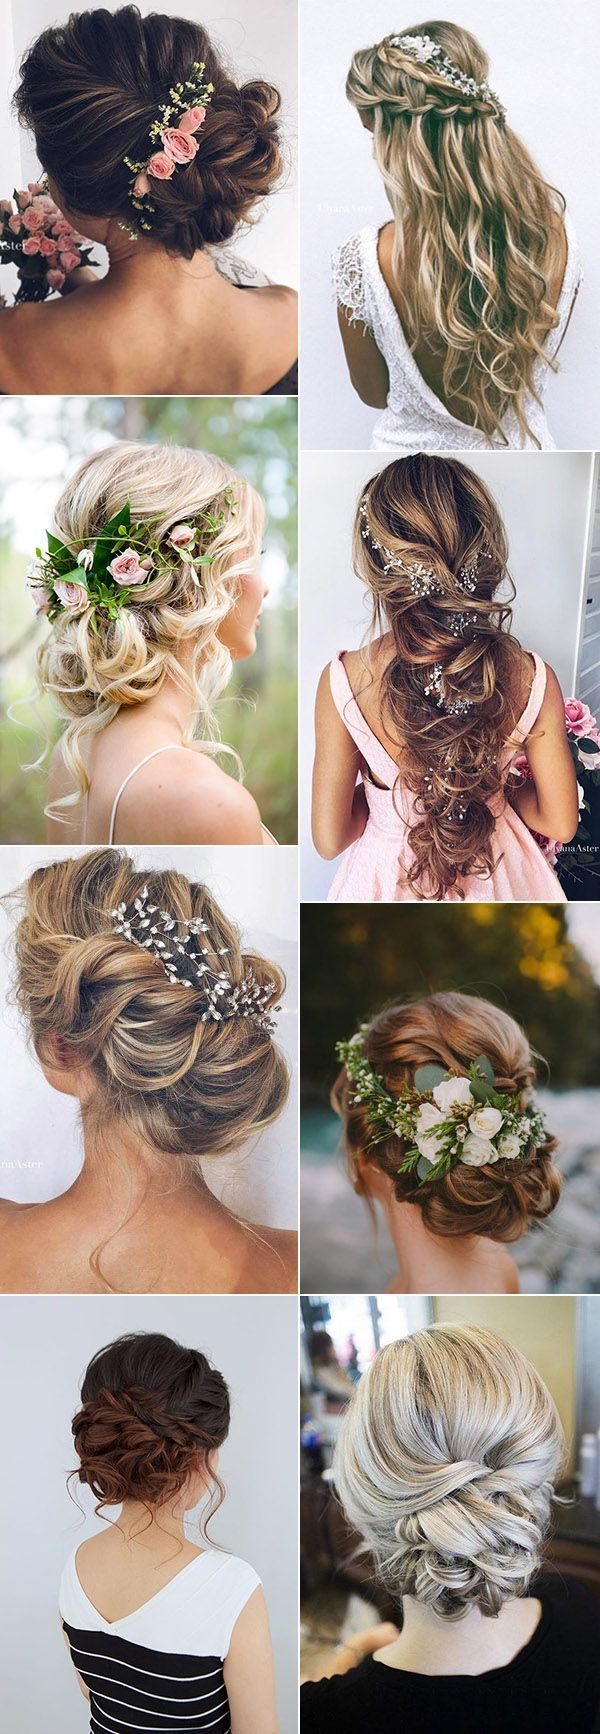 top 20 wedding hairstyles ideas for 2017 trends